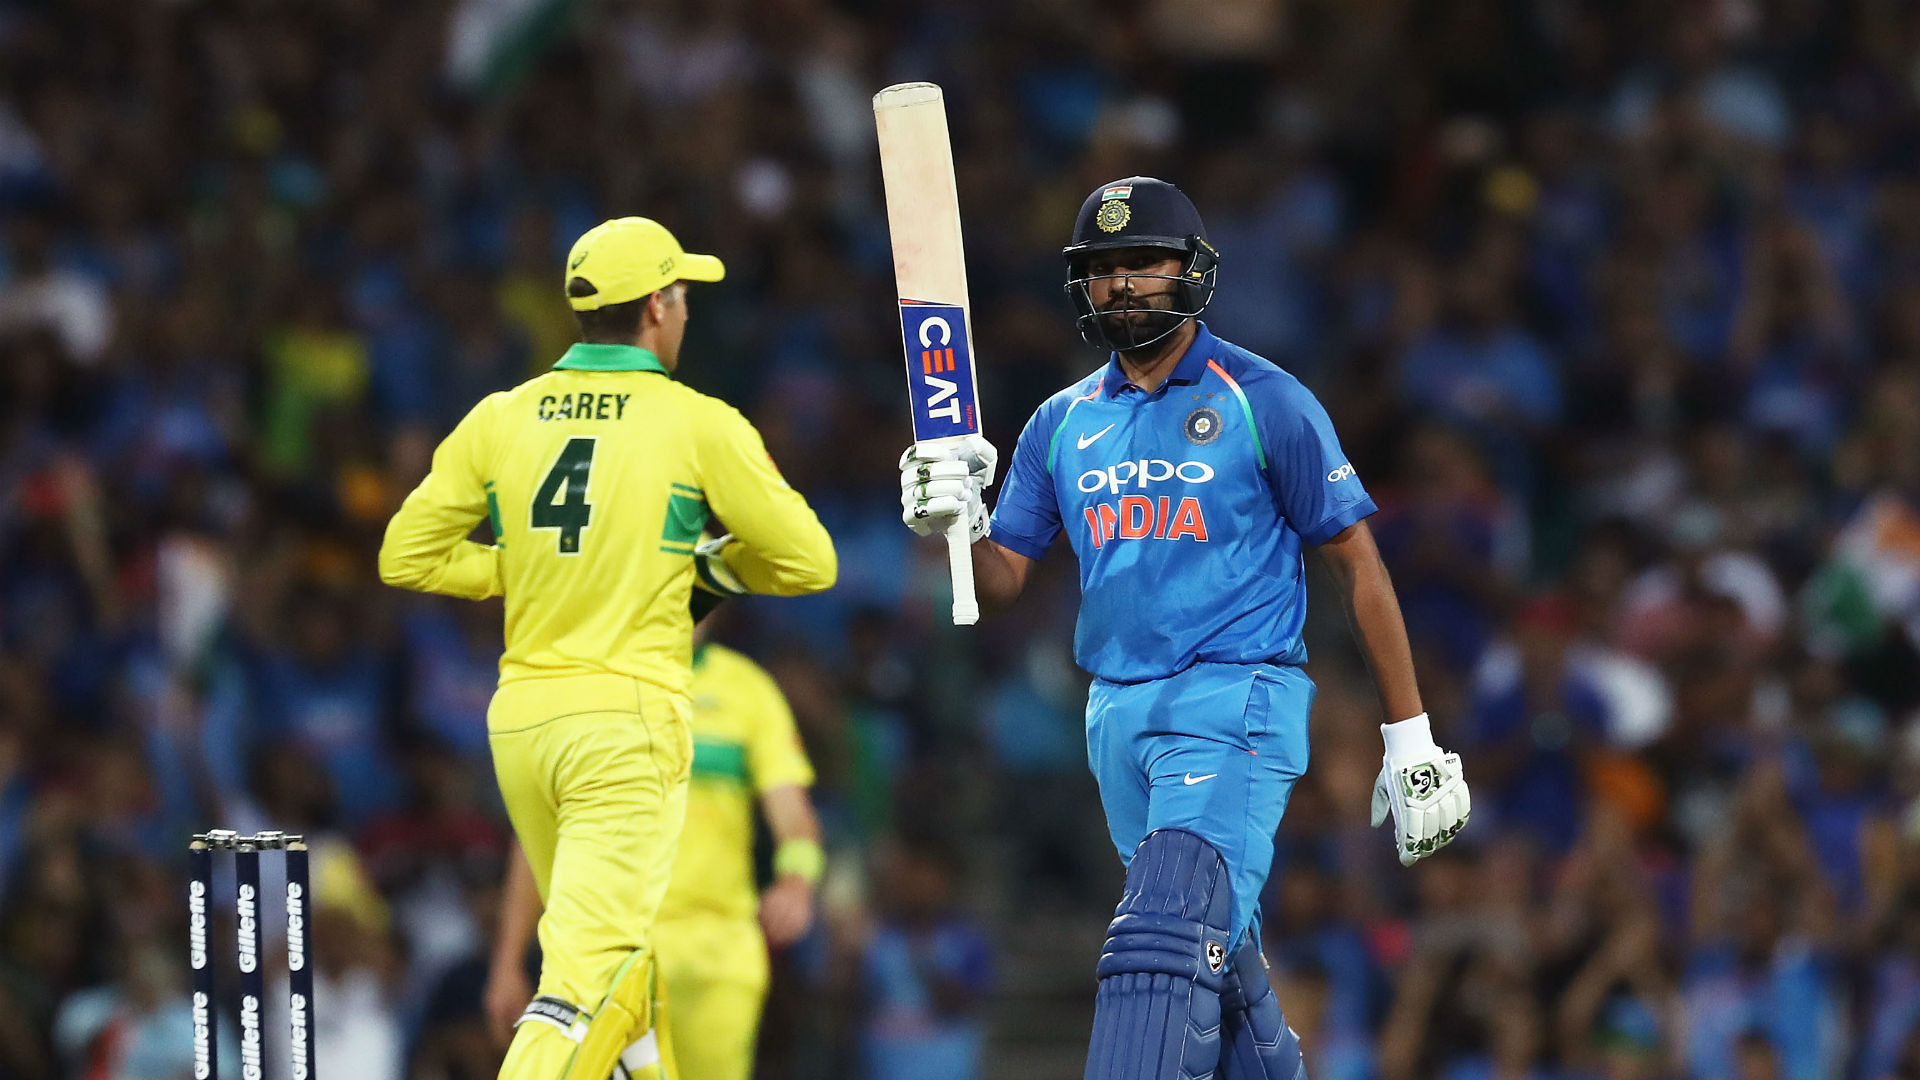 Australia became the first team in international cricket to win 1,000 matches across all formats with a 34-run triumph over India.